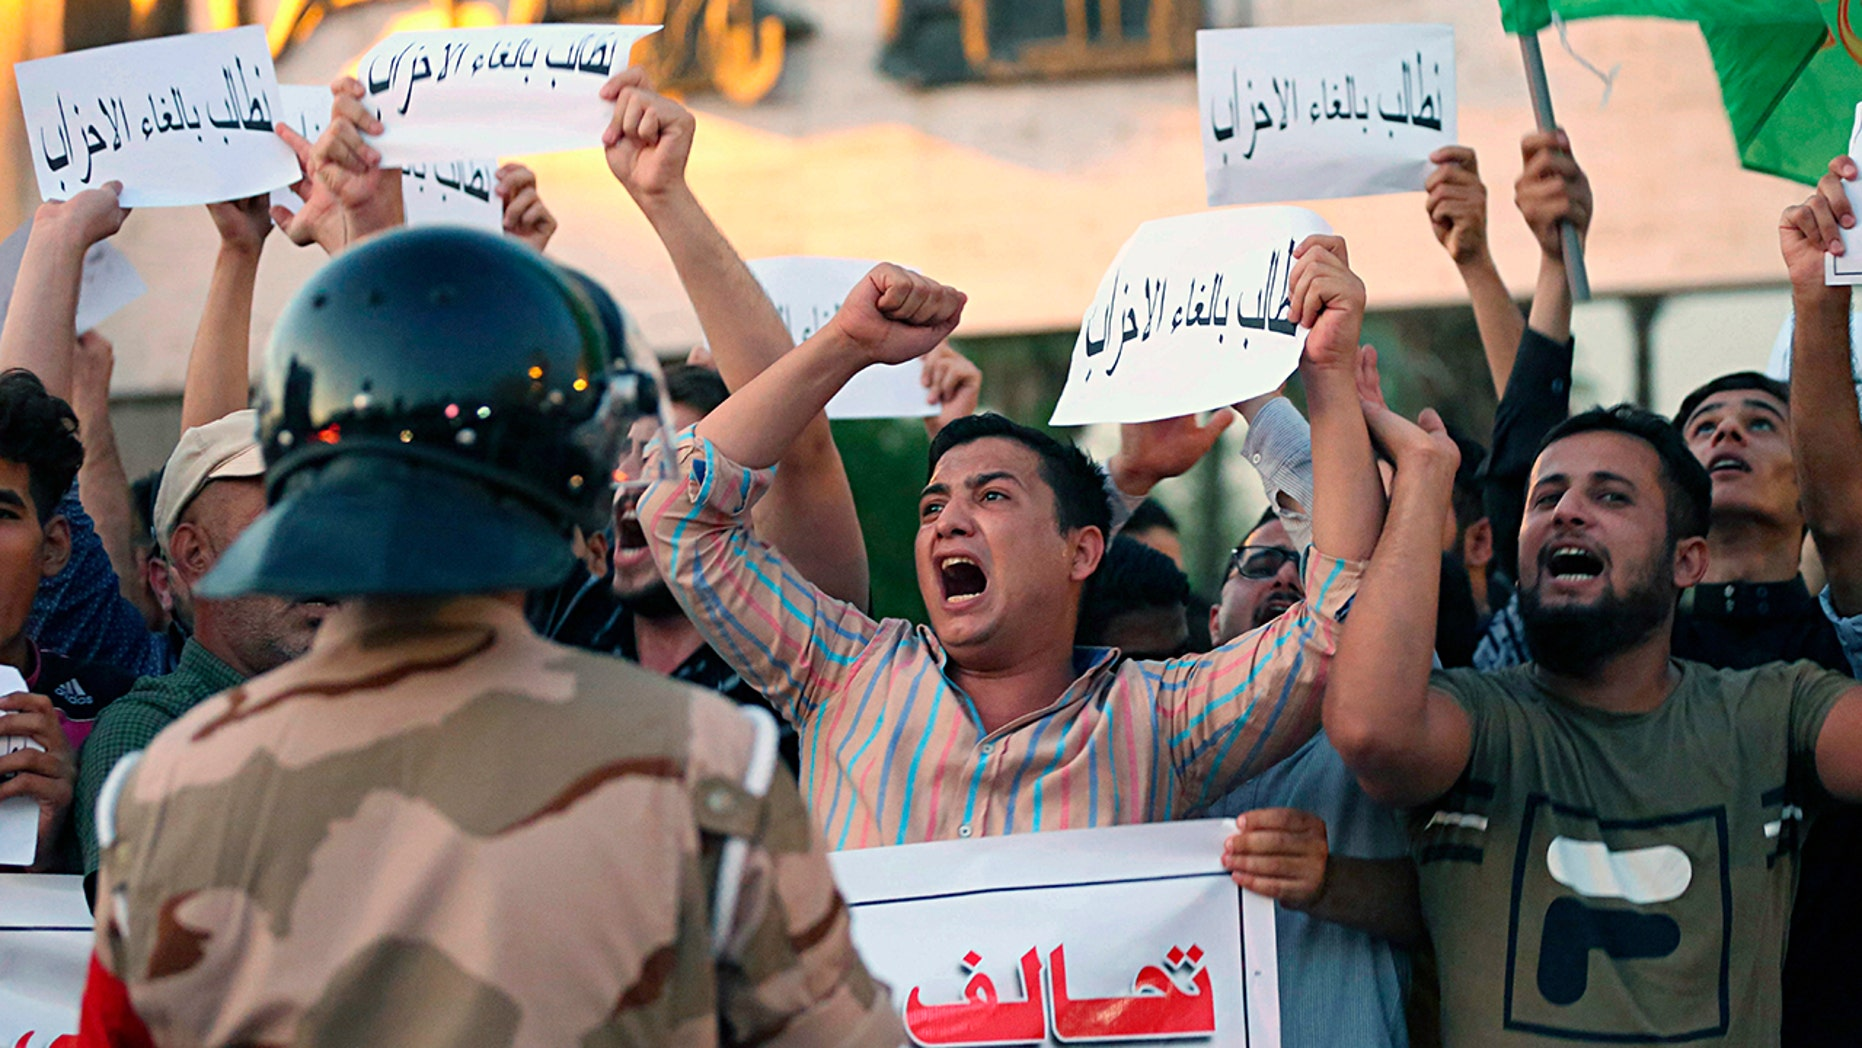 Iraqi protesters chant slogans demanding services and jobs during a demonstration in Tahrir Square, Baghdad, Iraq, July 14.